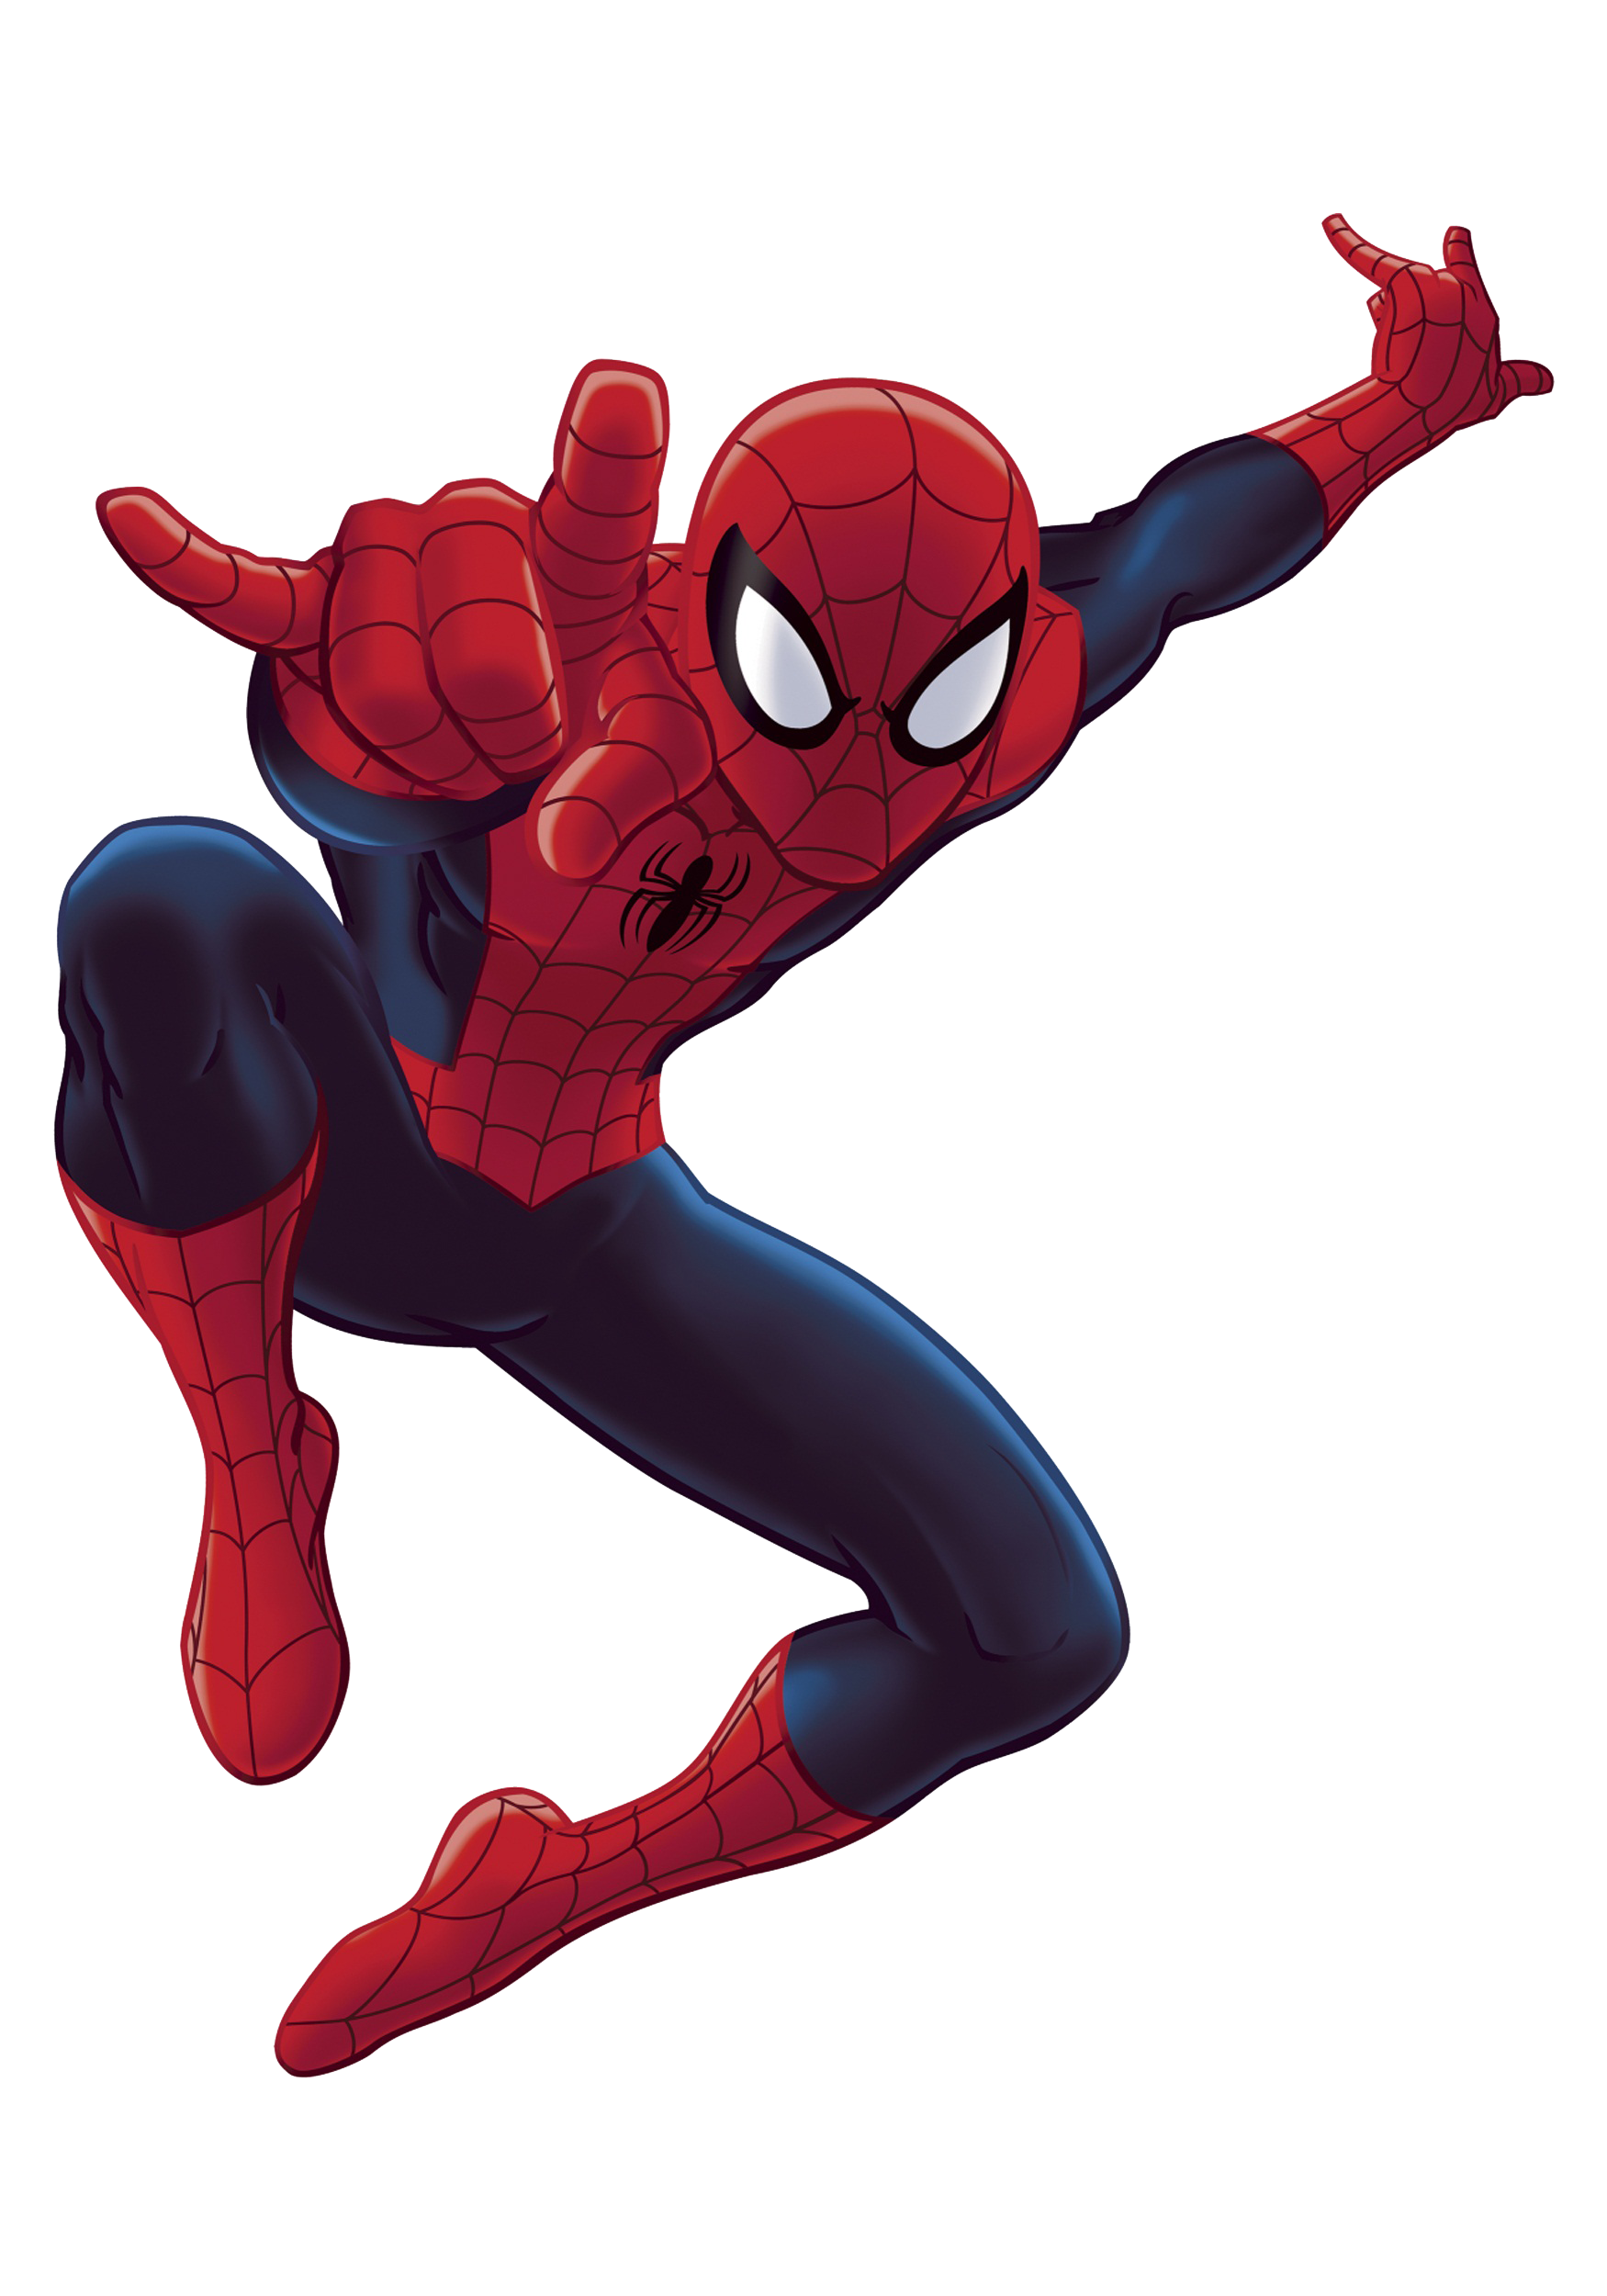 Spiderman Jump  Background